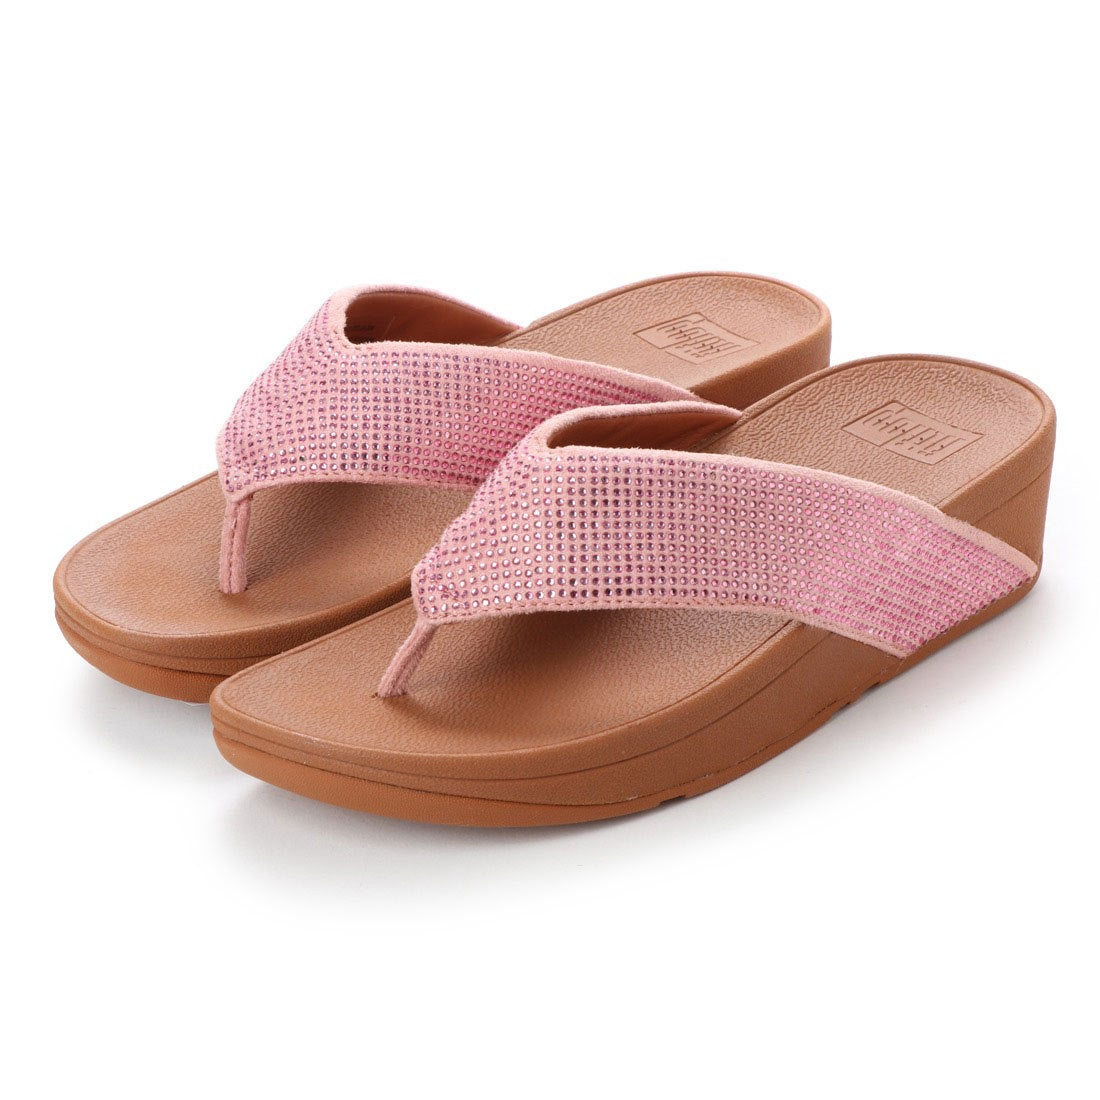 29b46cda2 fitflop フィットフロップ FitFlop RITZY TOE-THONG SANDALS (Dusky Pink) -アウトレット通販  ロコレット (LOCOLET)